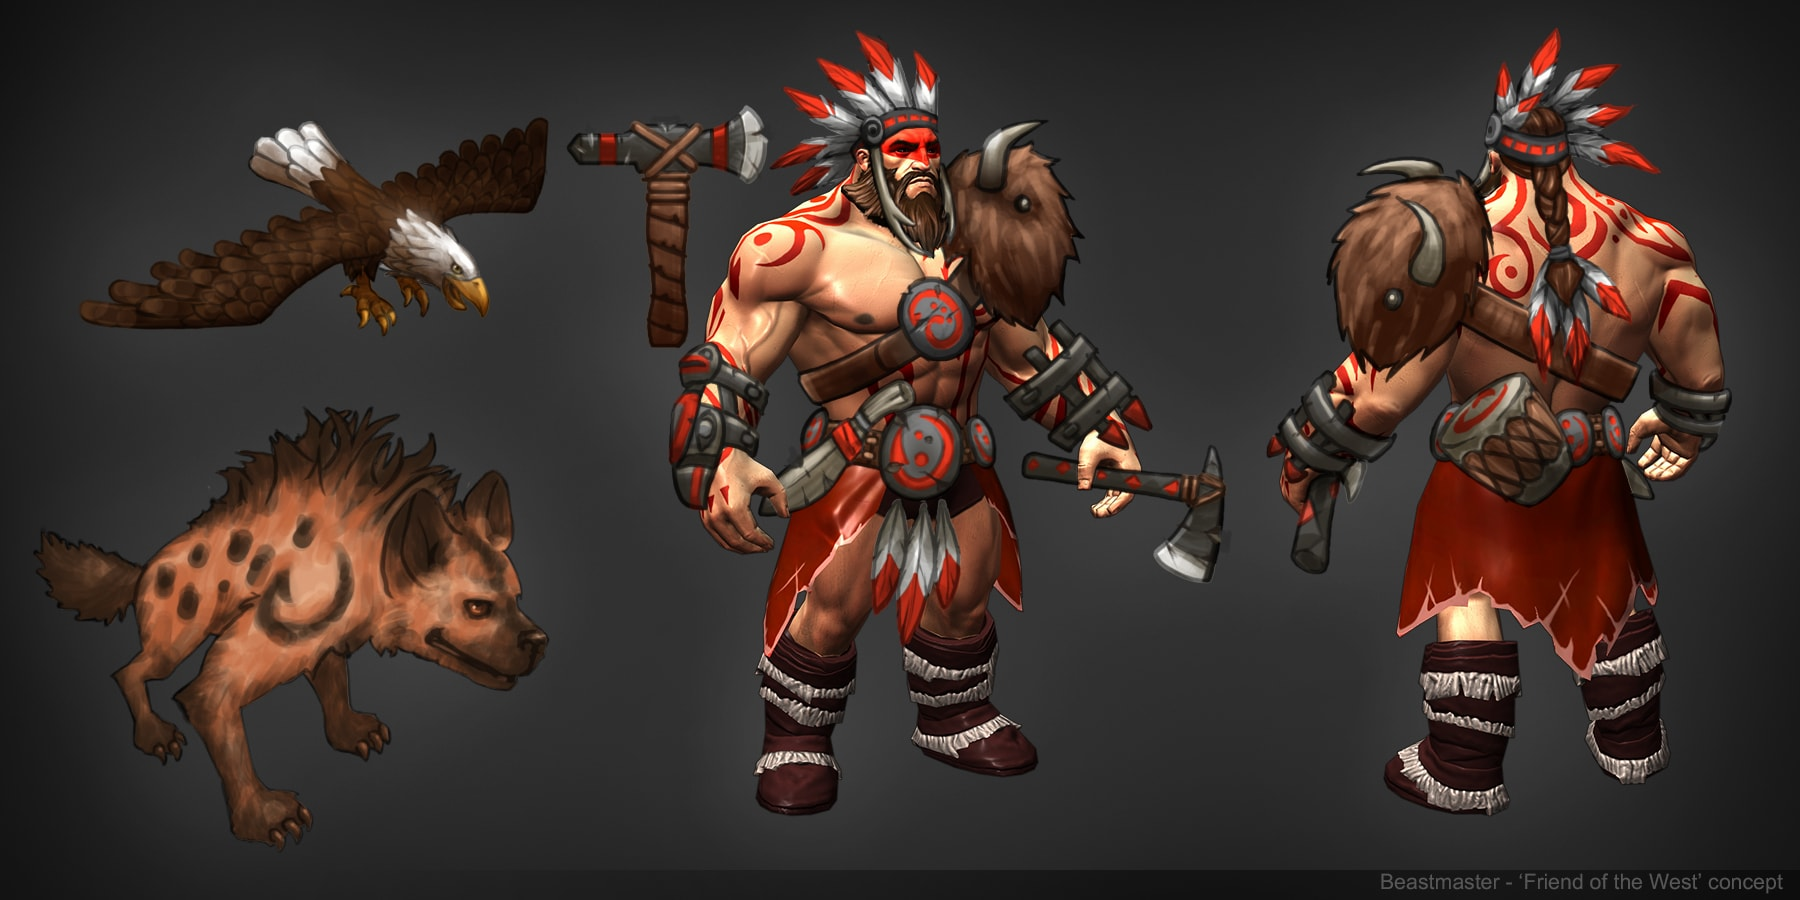 Dota2 : Beastmaster HQ wallpapers